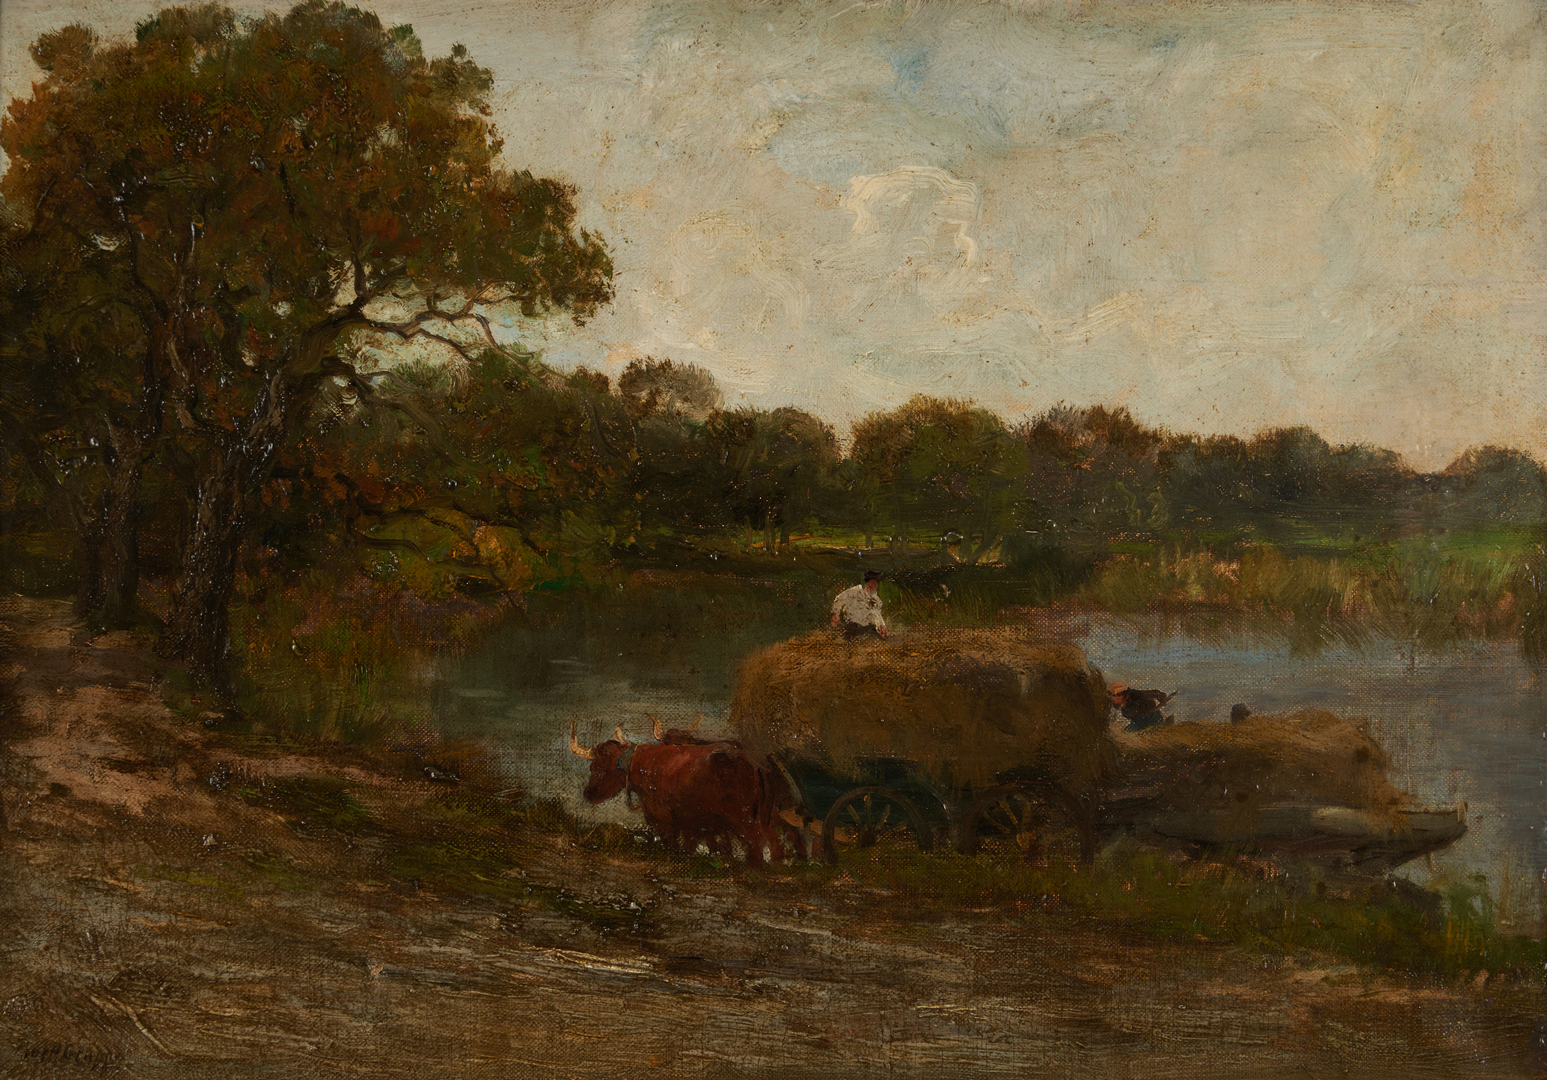 Lot 135: Charles Gruppe O/C, Unloading Hay, Connecticut River